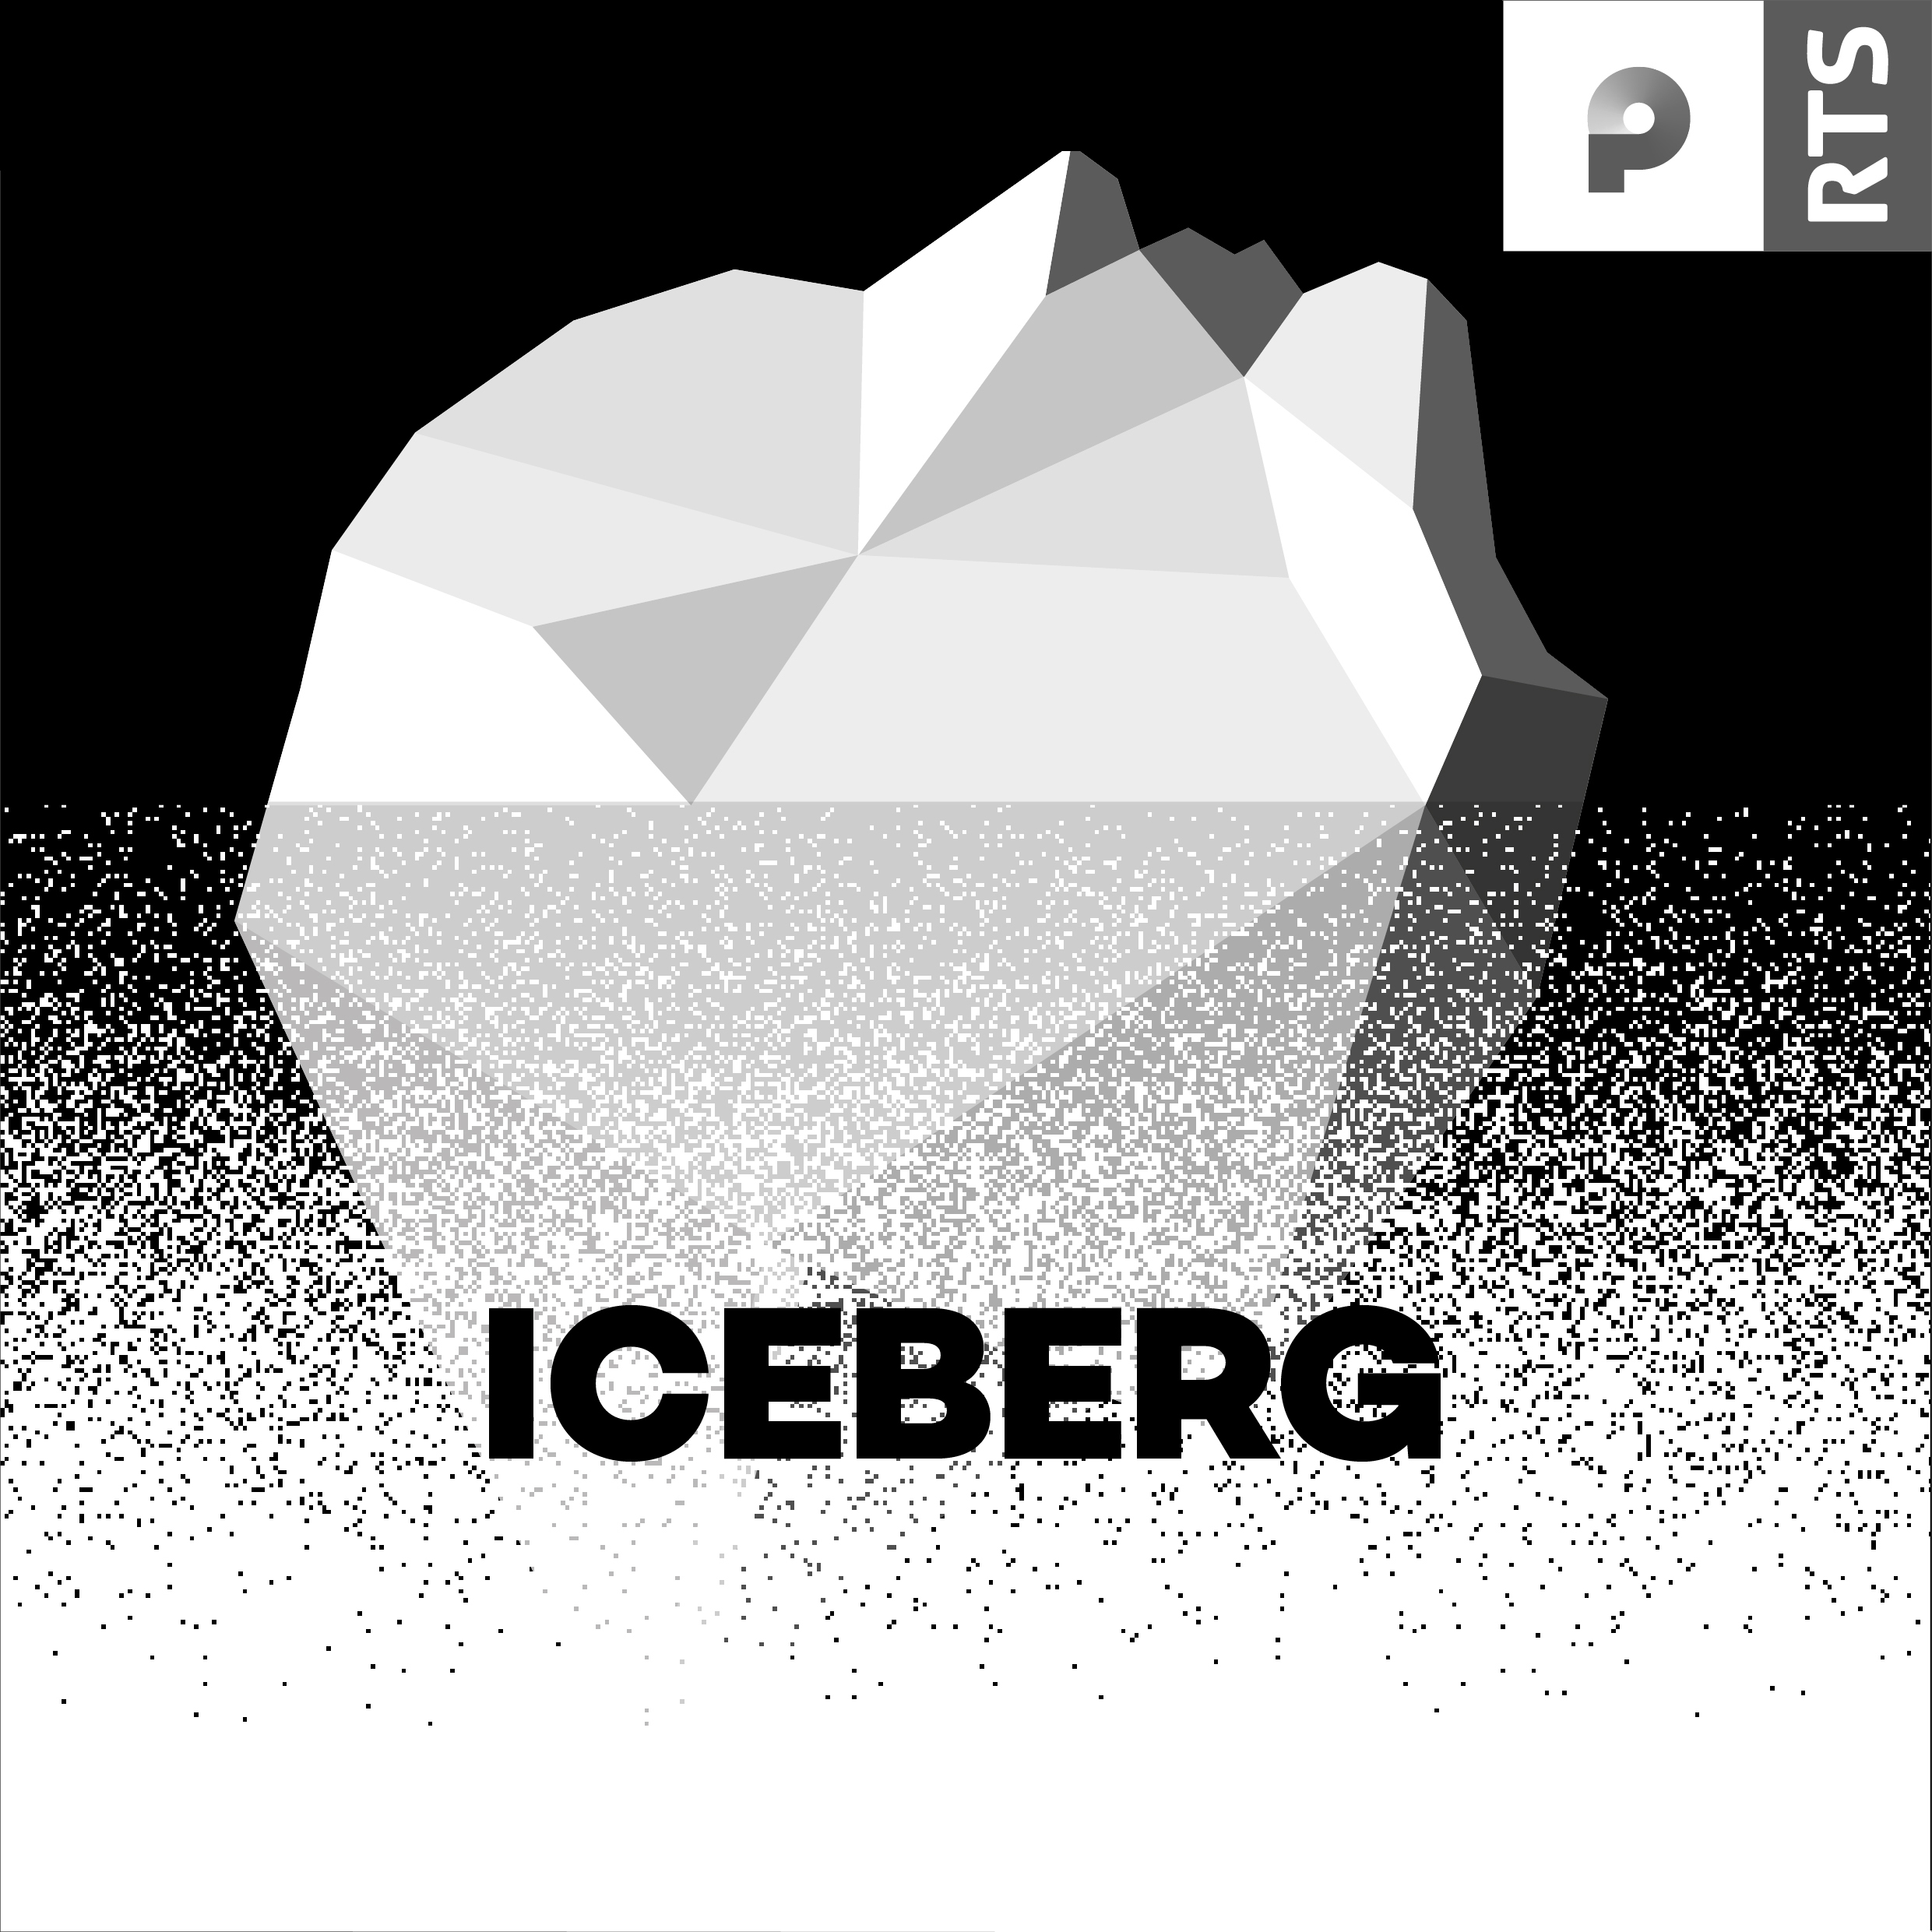 RTS Podcasts Iceberg cover 1400x1400px. [RTS]